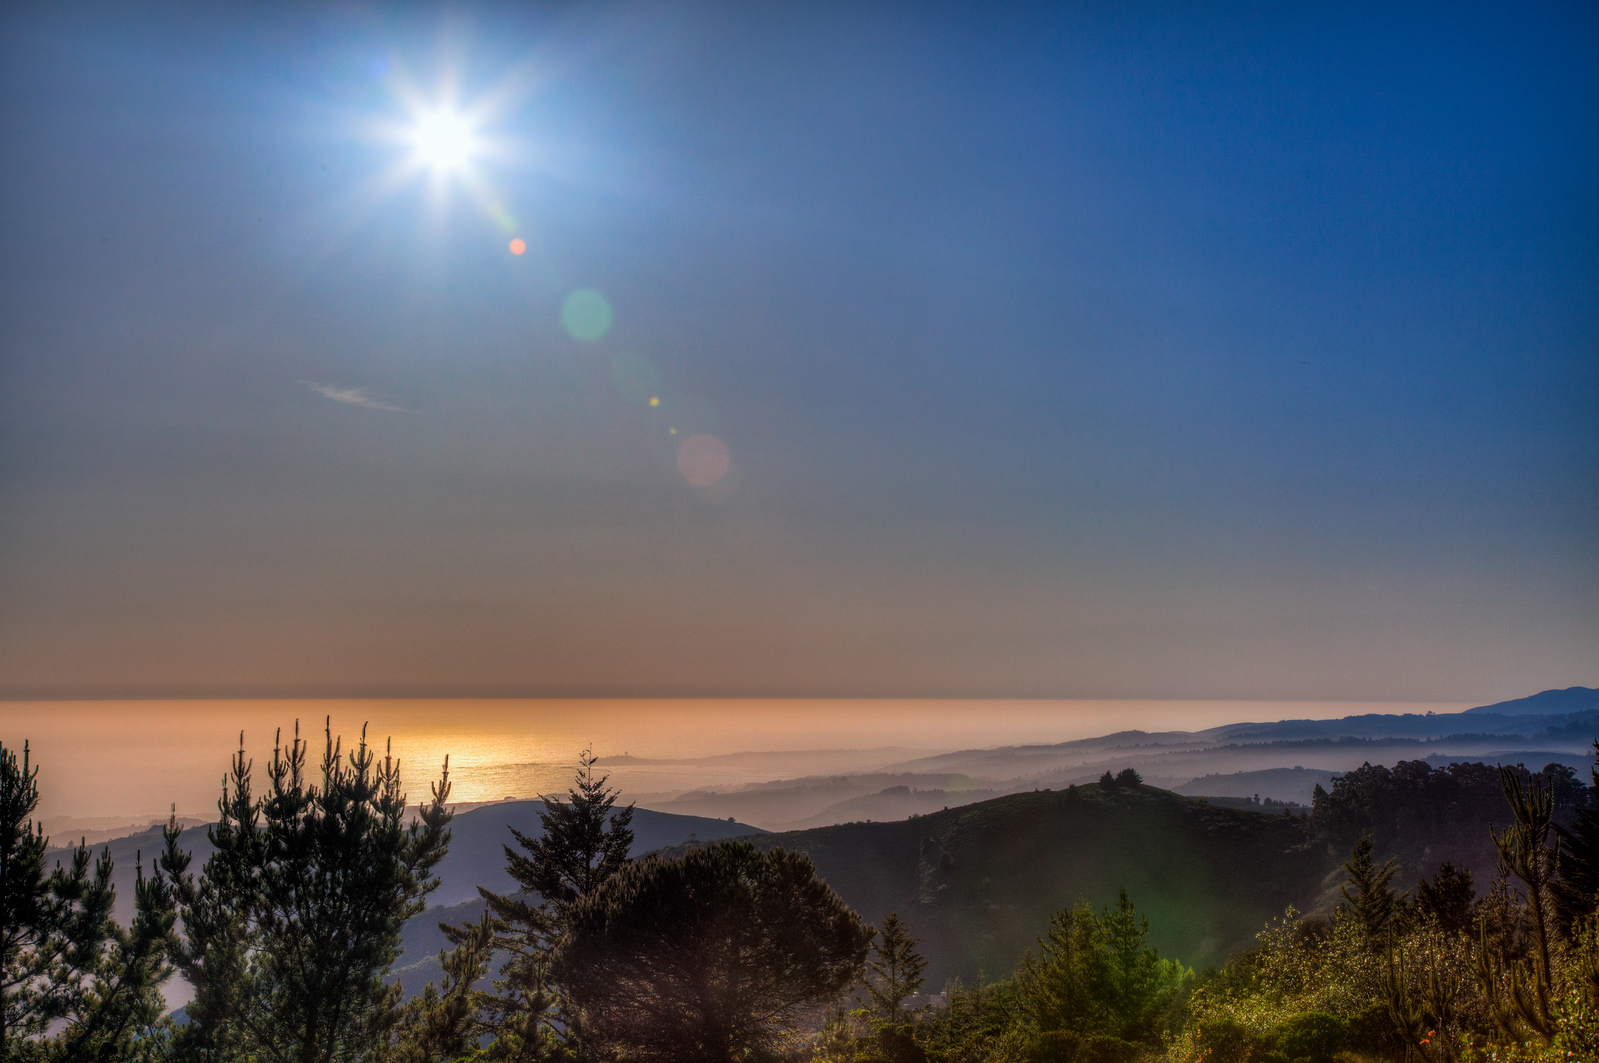 """This is looking to the west, nearing sunset, from the top of the mountains looking down onto Half Moon Bay. 37°27'41"""" N 122°20'45"""" W"""